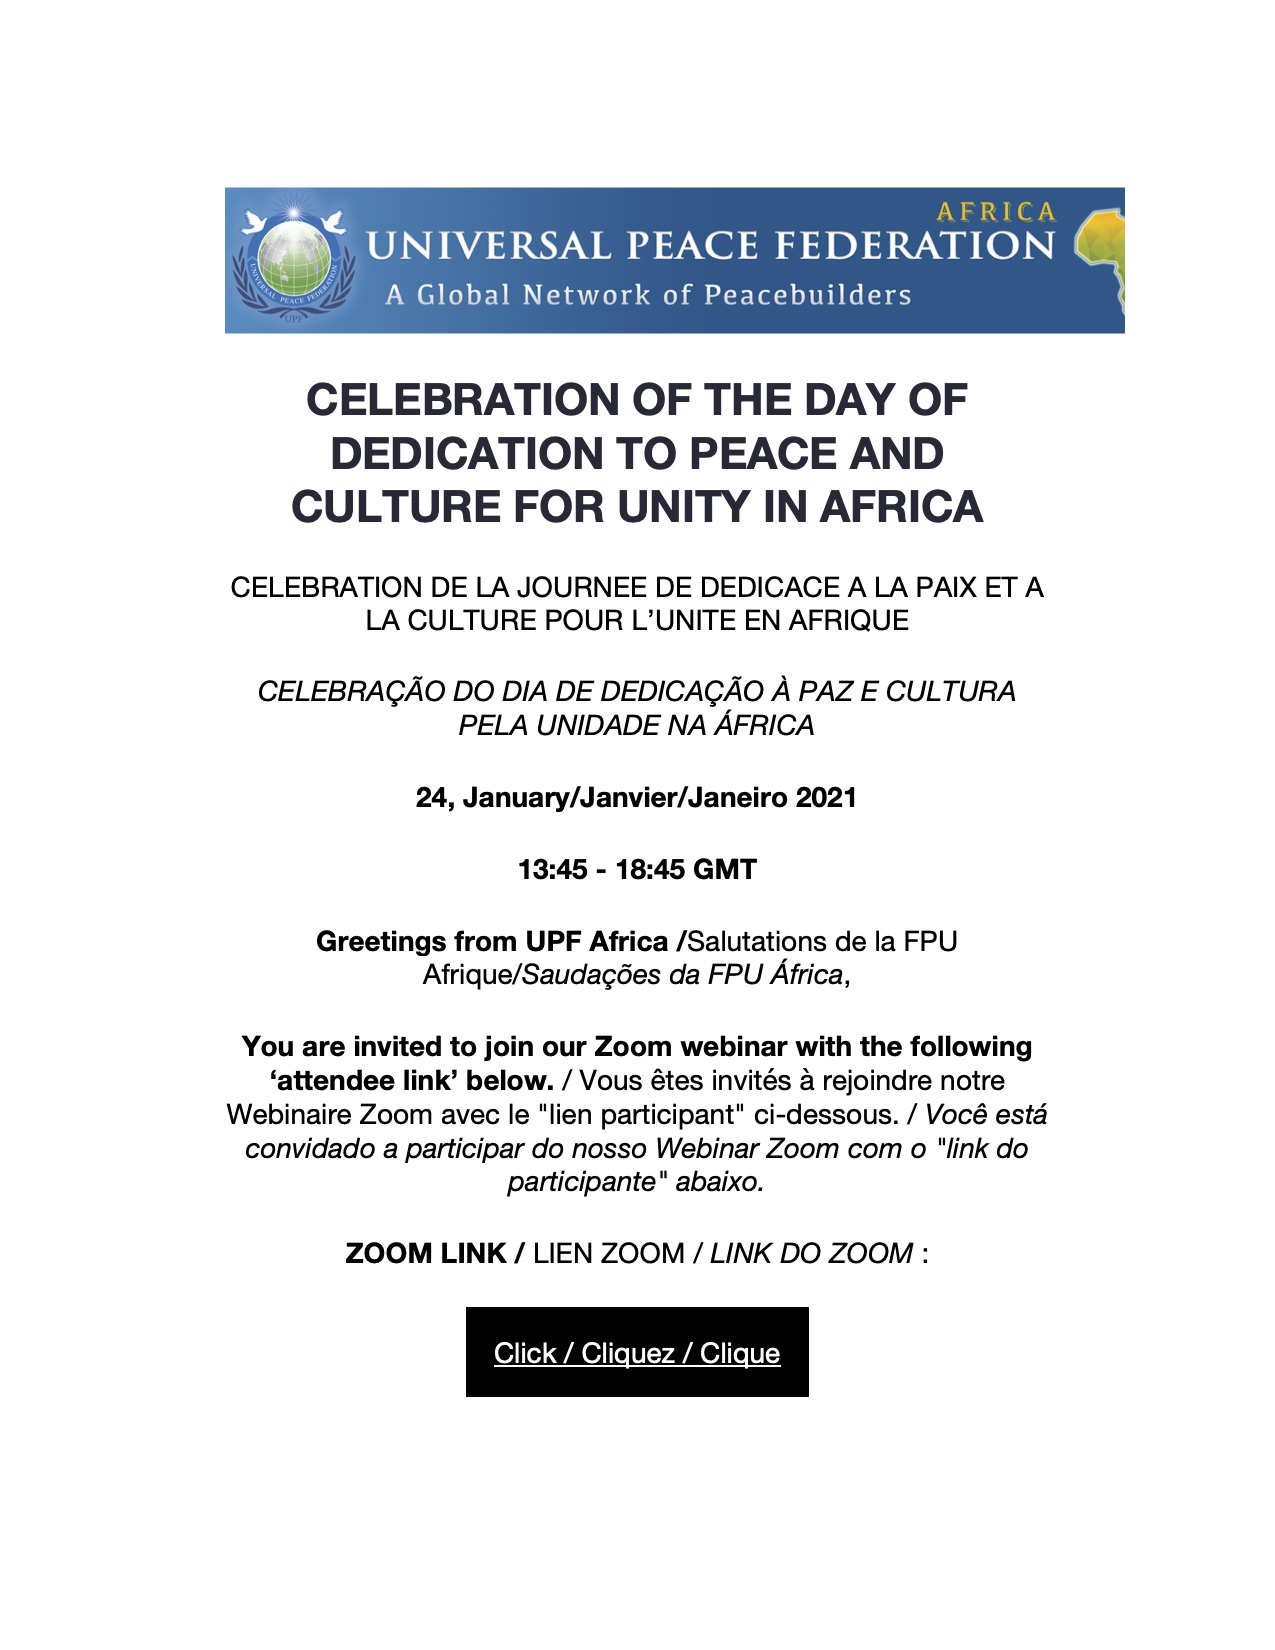 CELEBRATION OF THE DAY OF DEDICATION TO PEACE AND CULTURE FOR UNITY IN AFRICA copy